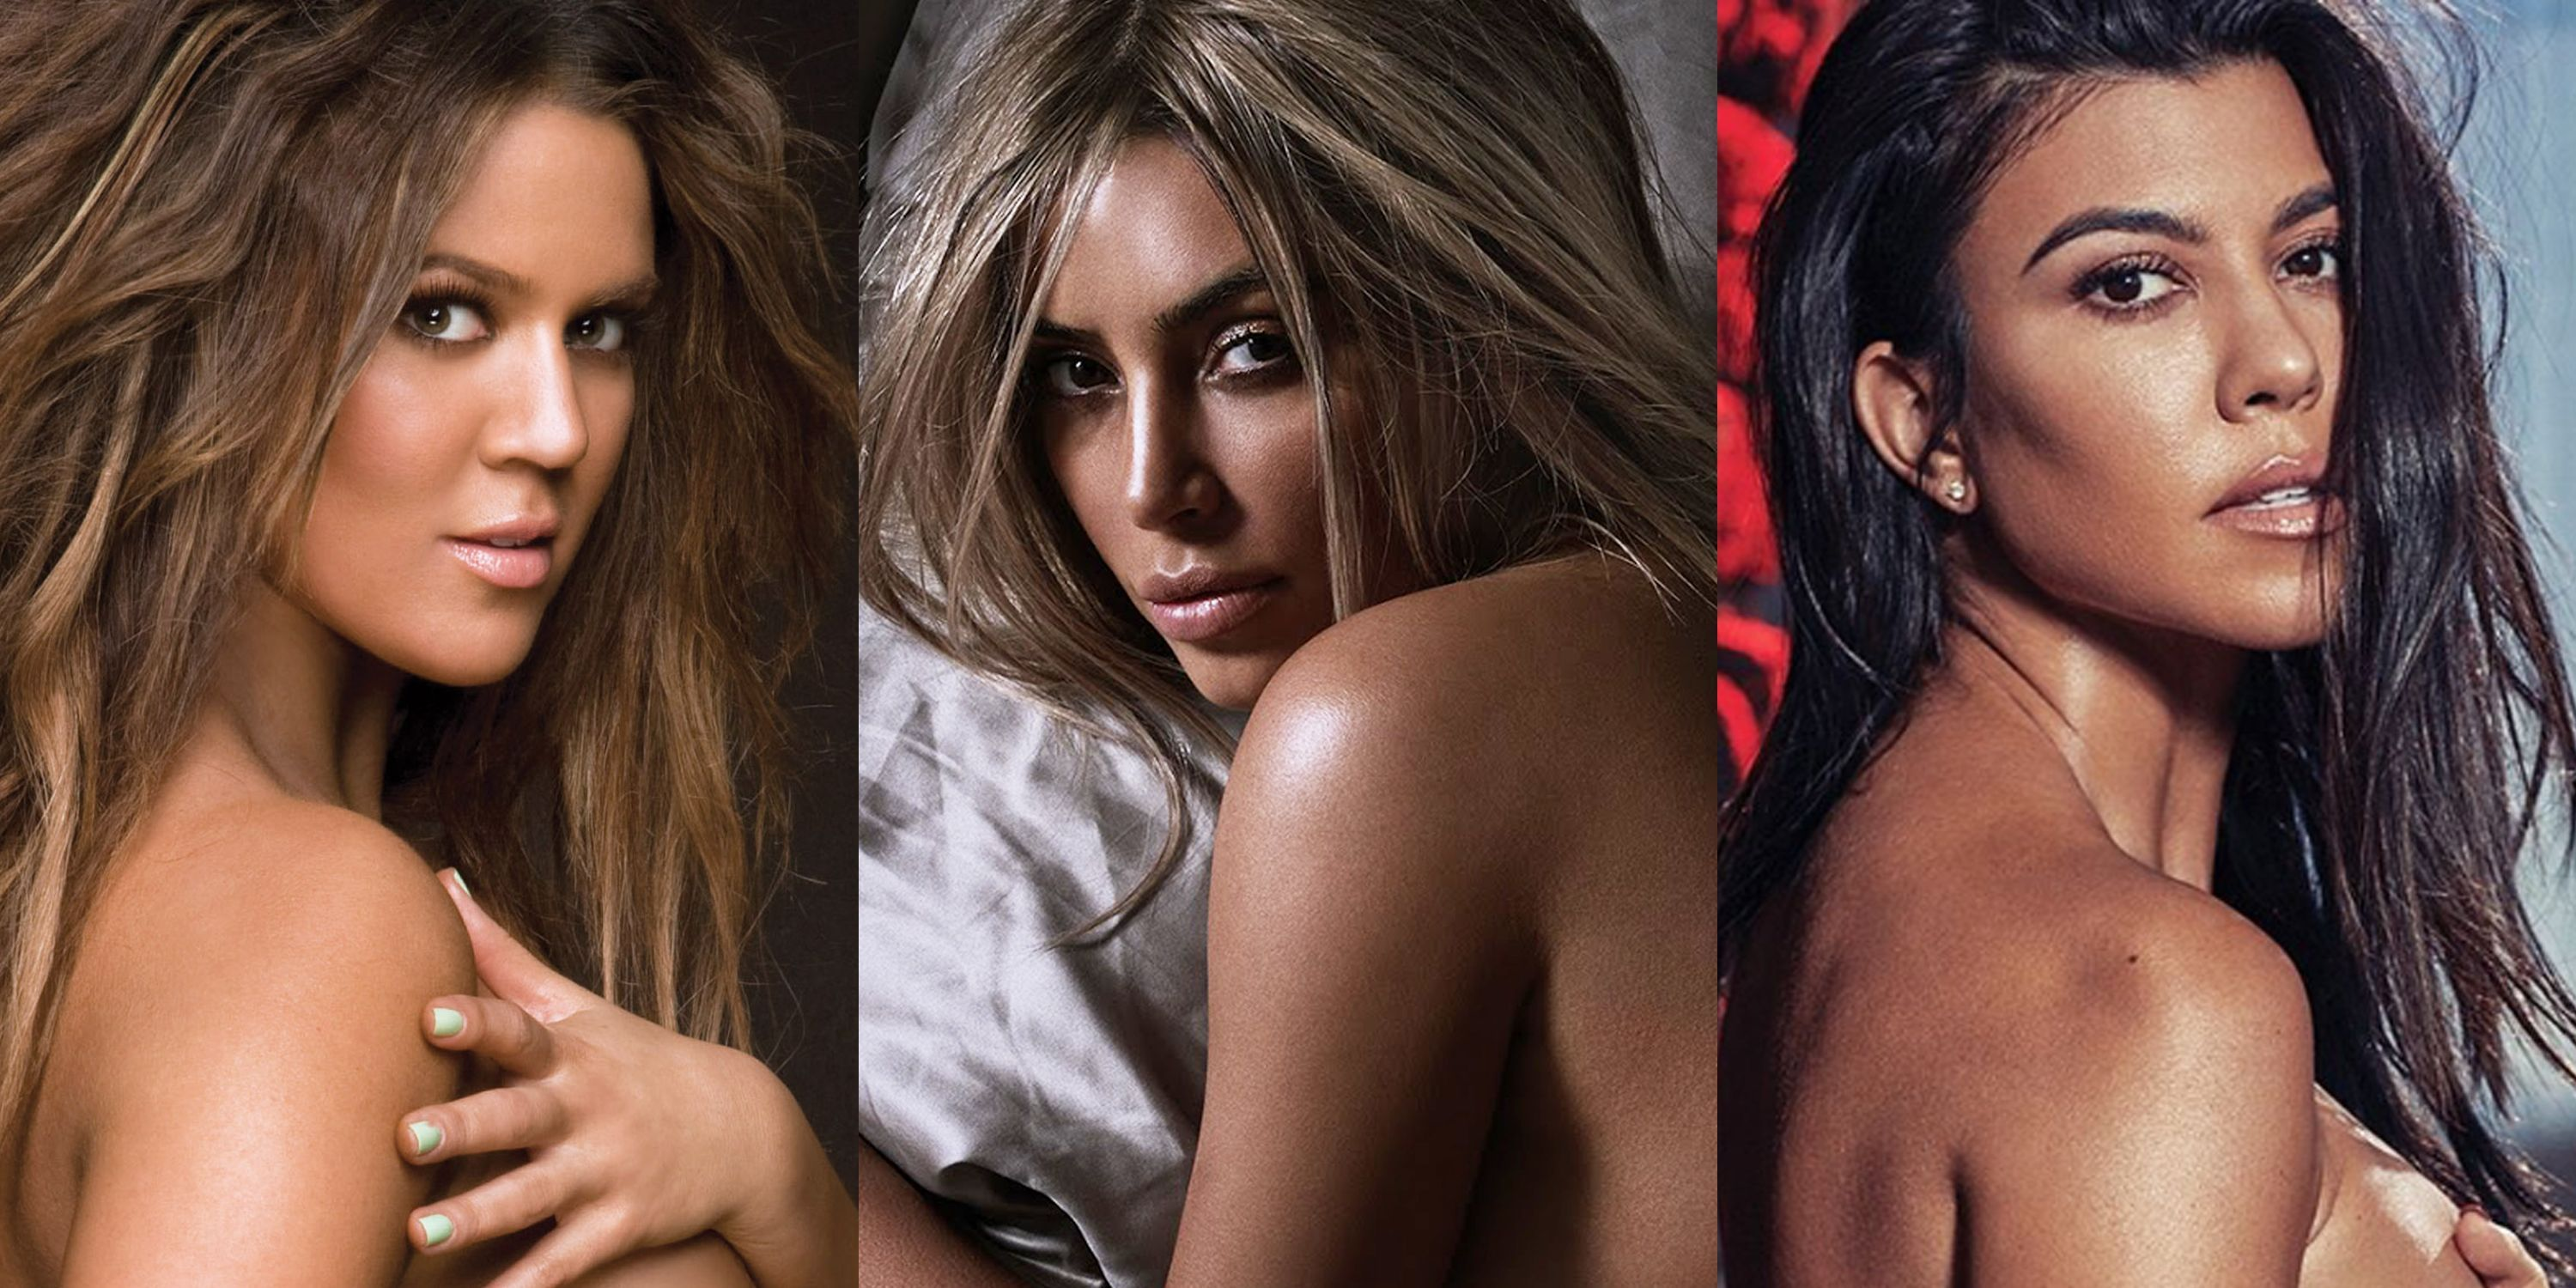 Sexiest women of all time fully nude